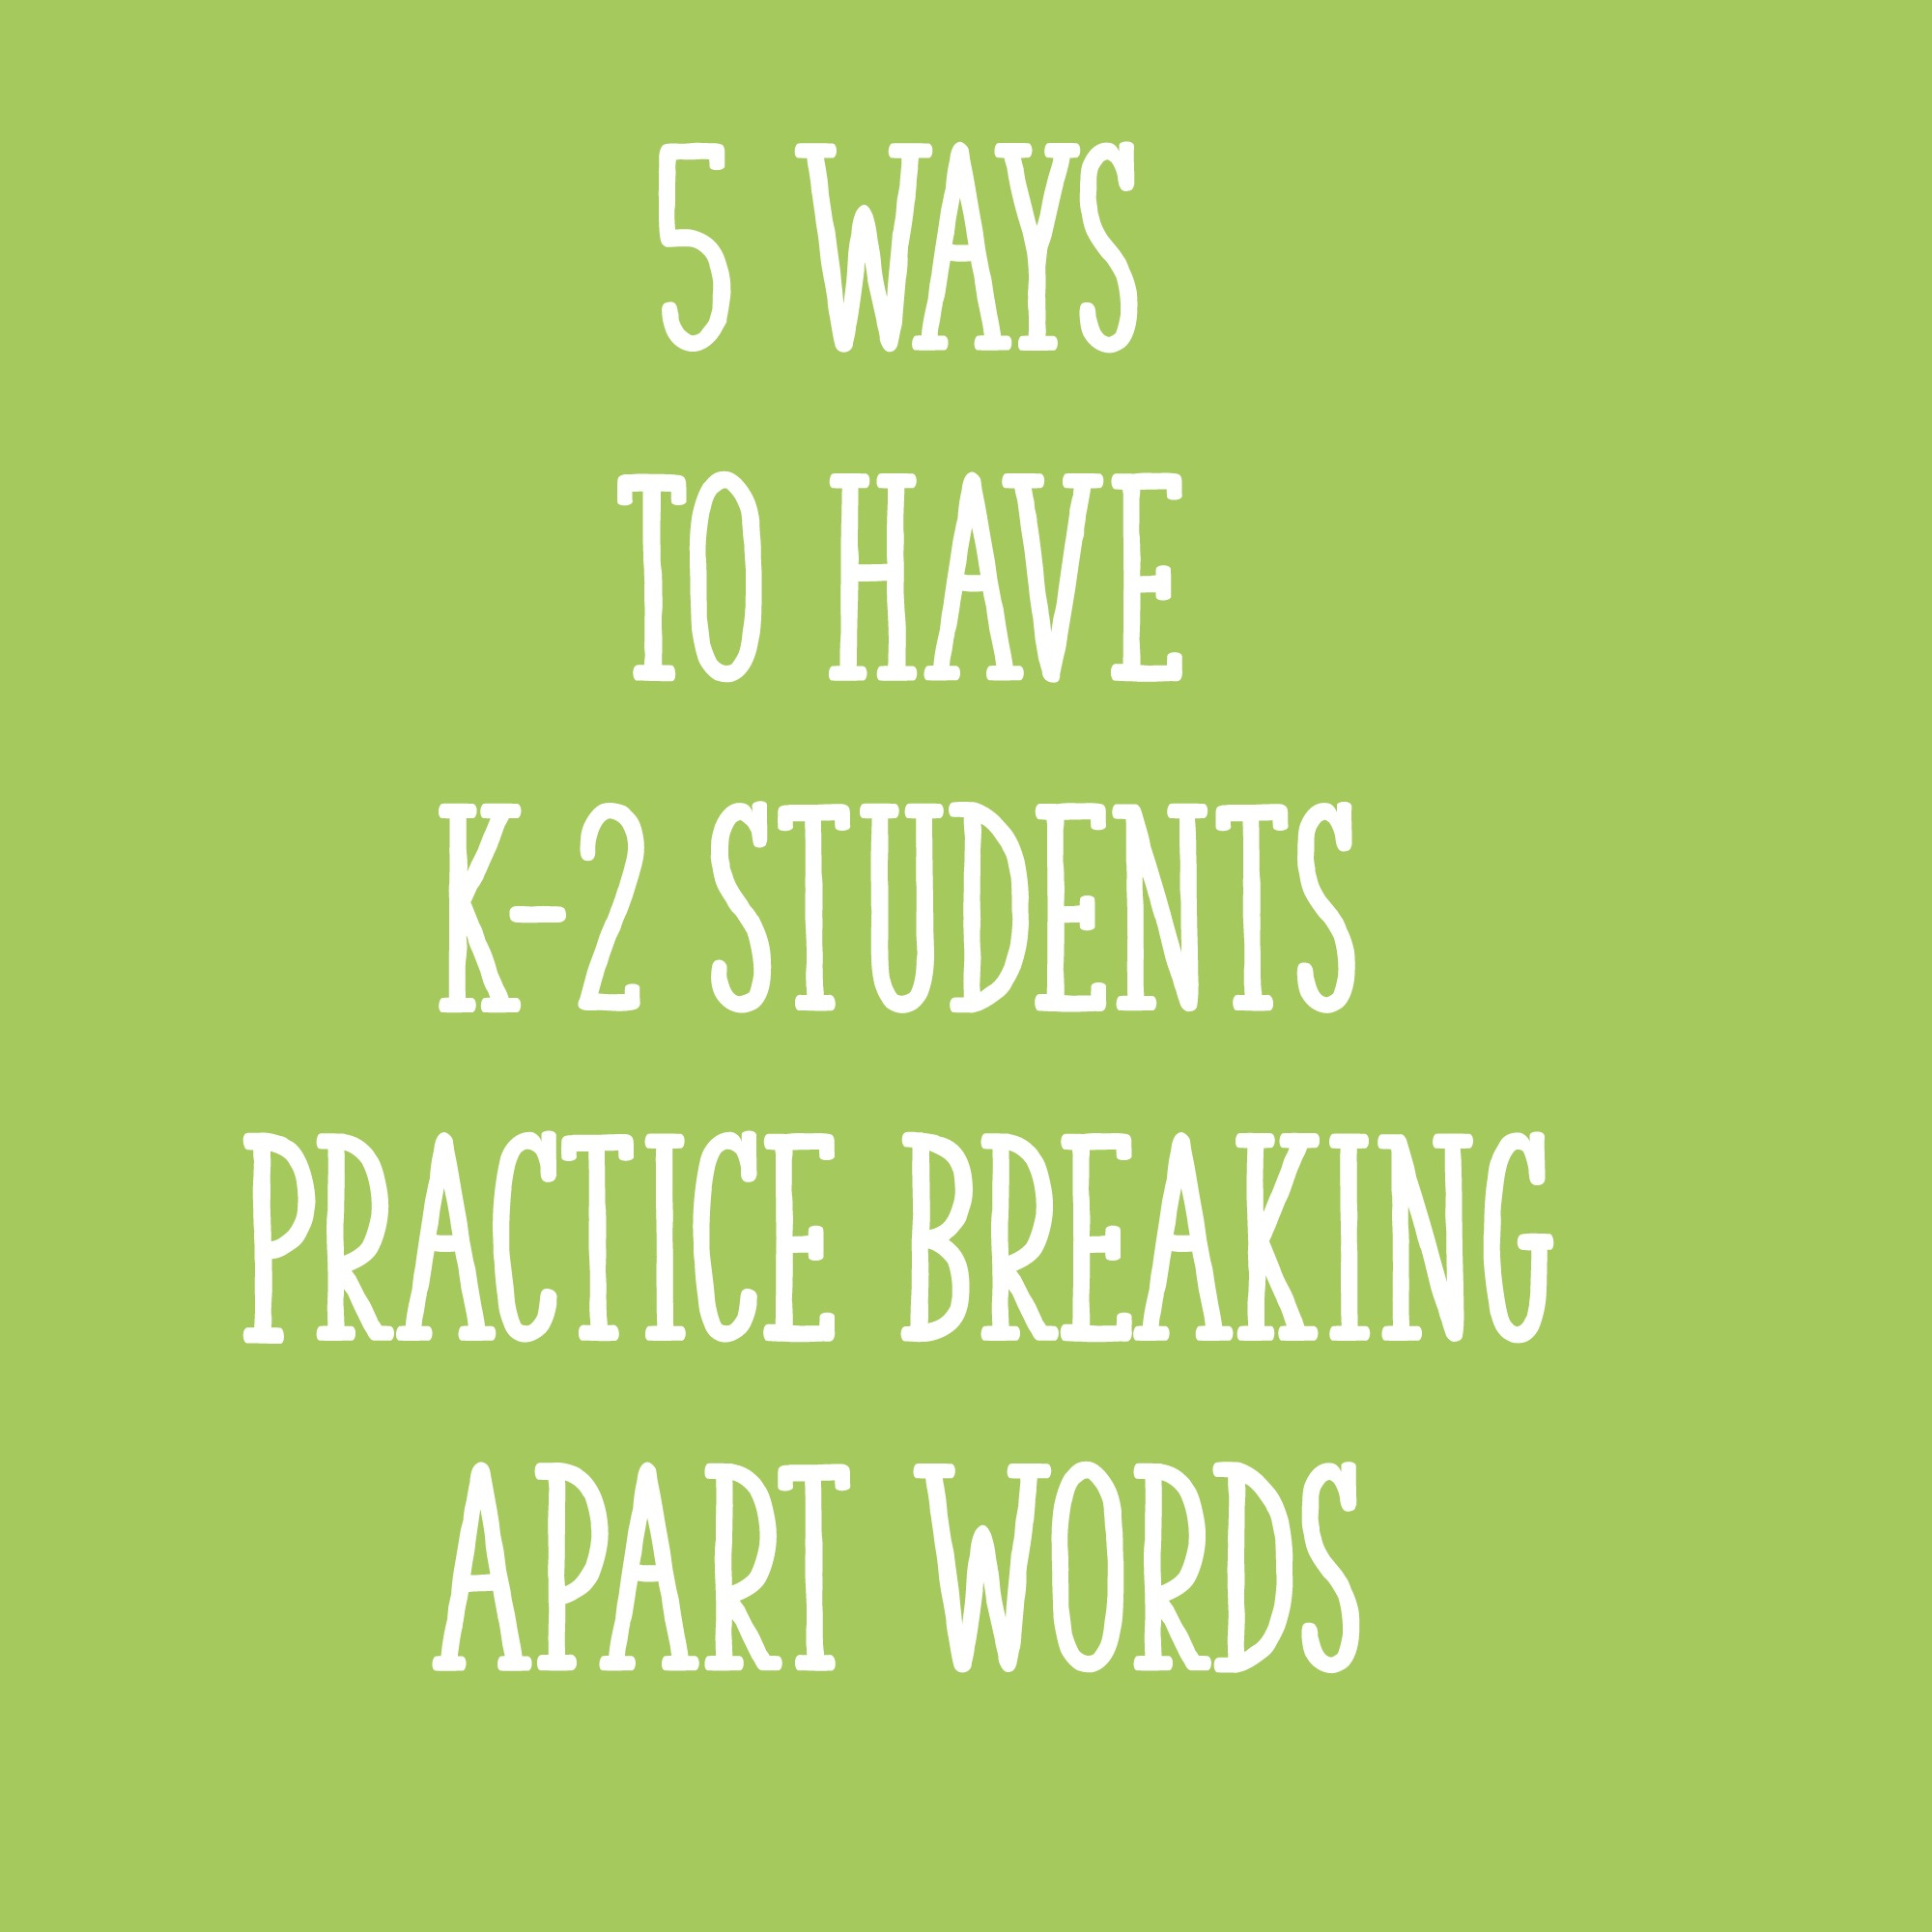 Apart Definition: 5 Ways To Have K-2 Students Practice Breaking Apart Words